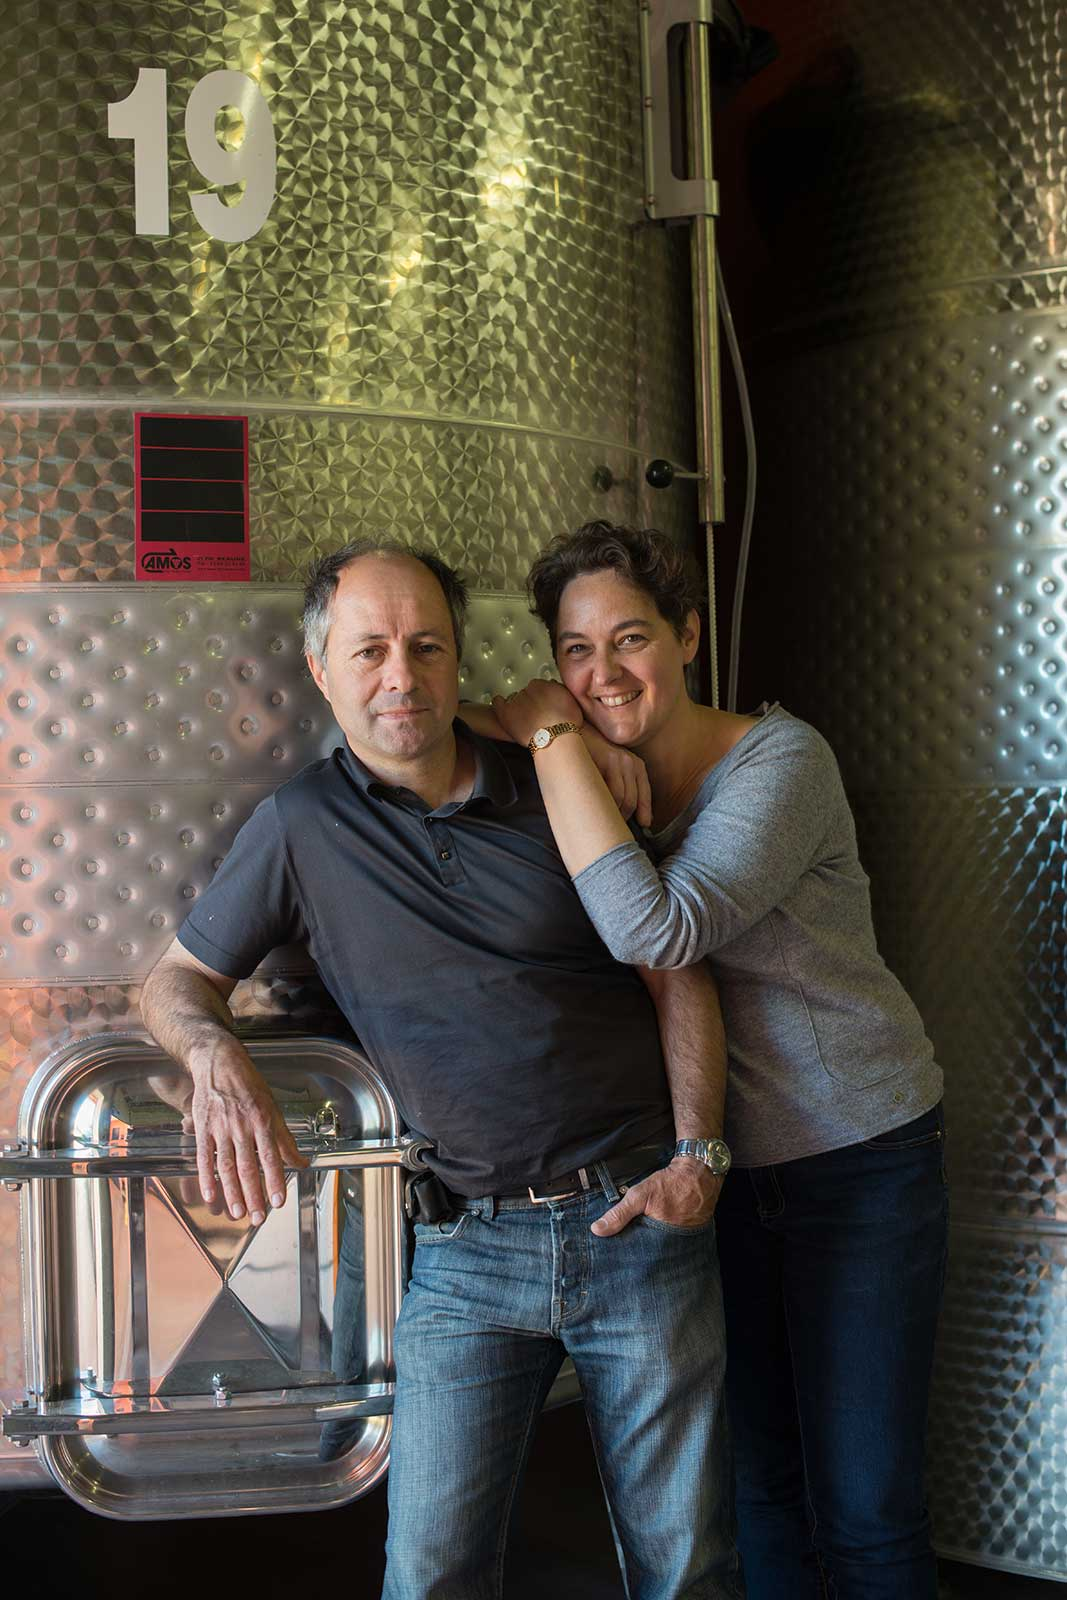 Winemakers Anne Gros & Jean-Paul Tollot originally hail from Burgundy and continue to produce wines from there as well. ©Domaine Anne Gros & Jean-Paul Tollot